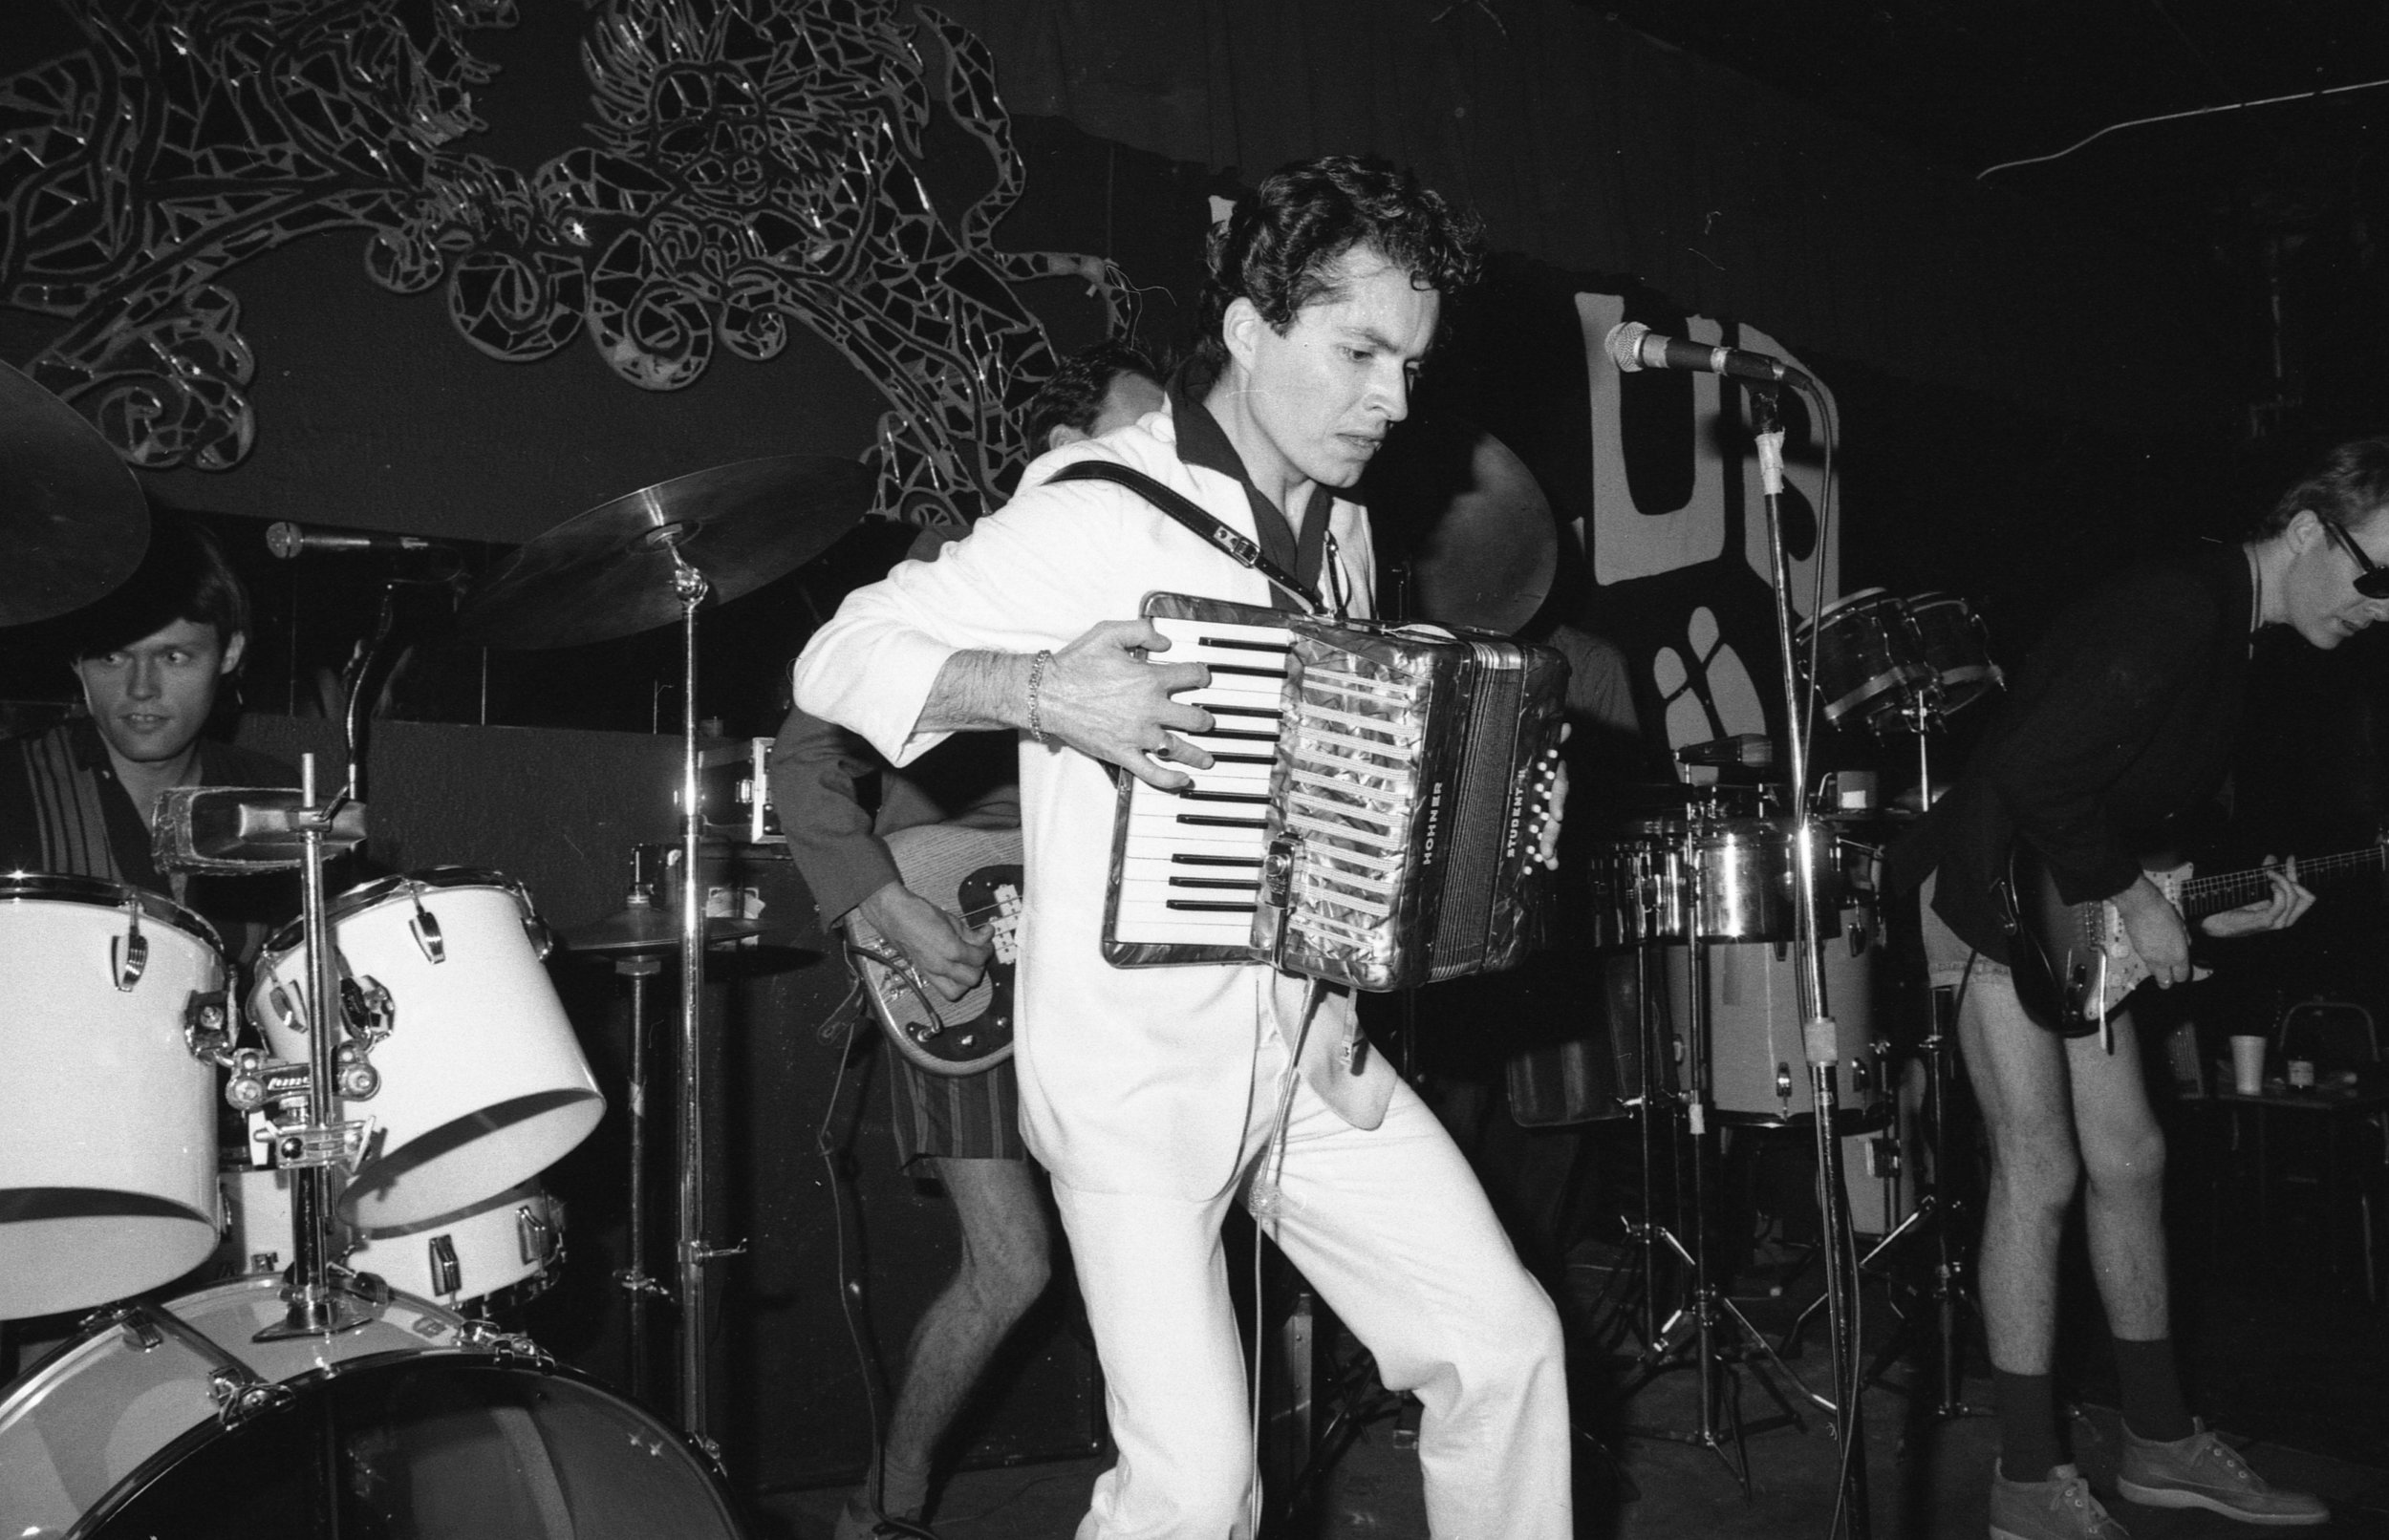 Billy Sheets and Undercover at the On Klub, Los Angeles, 1981.